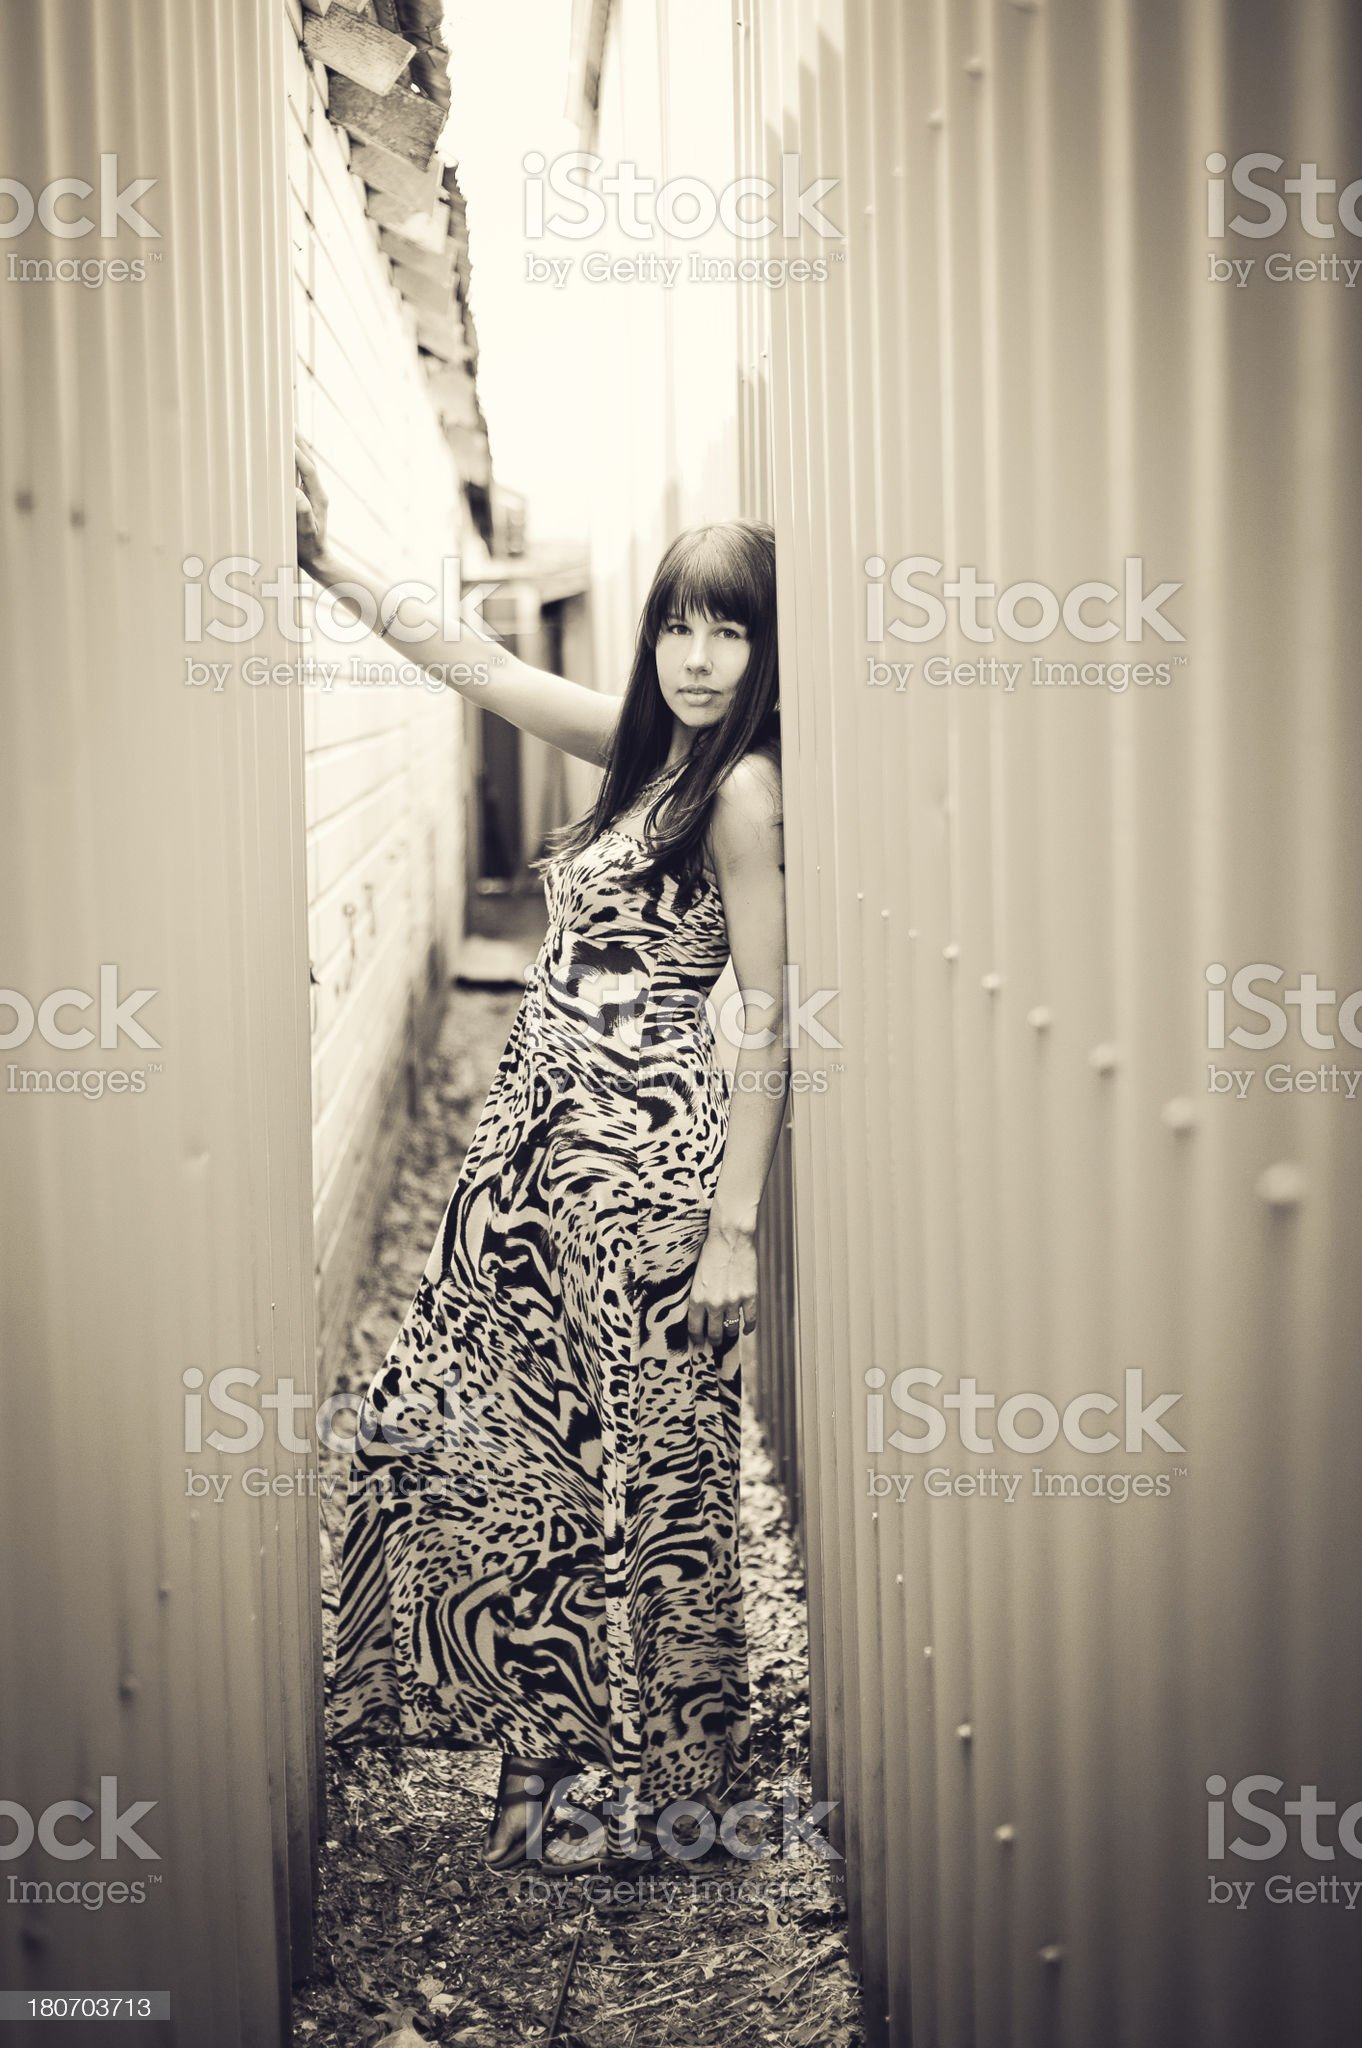 Beautiful woman in a narrow alley royalty-free stock photo